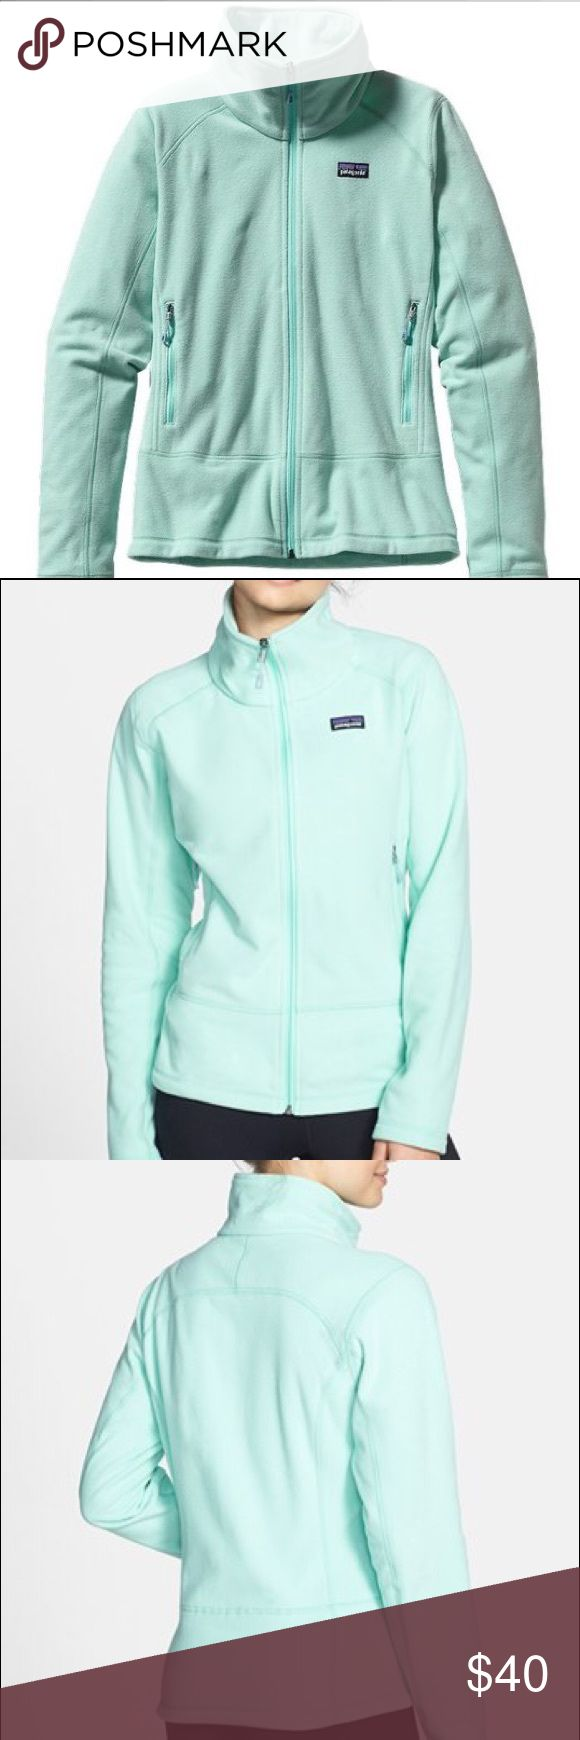 """Patagonia Micro Fleece Full Zip Teal Jacket Patagonia Teal Emmilen Microfleece Jacket Polar Blue 